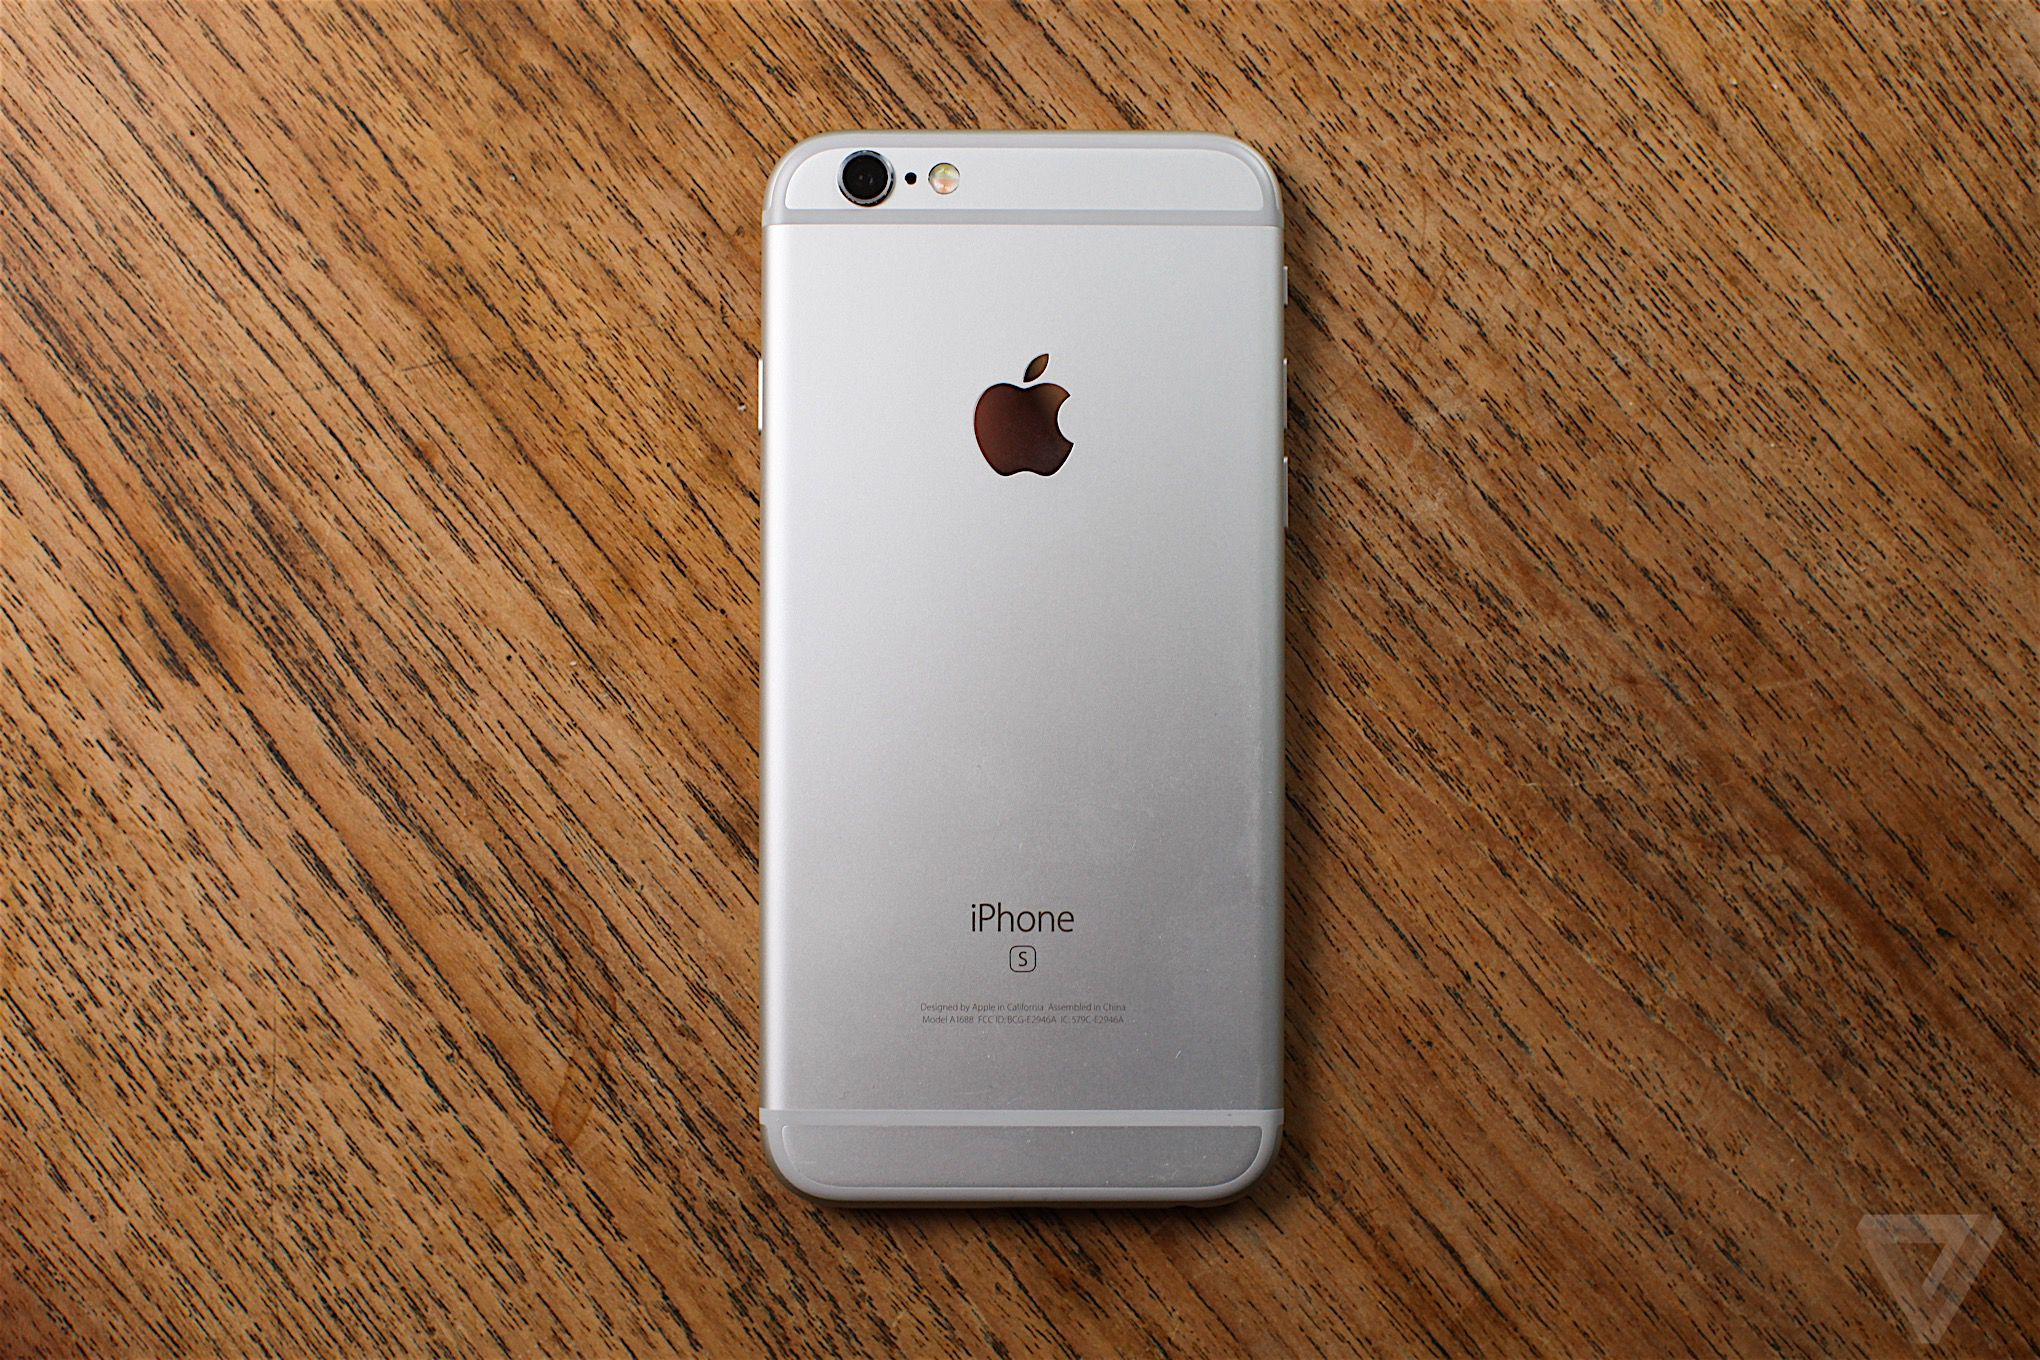 Apple iPhone 6S review: The oldest iPhone can't compete